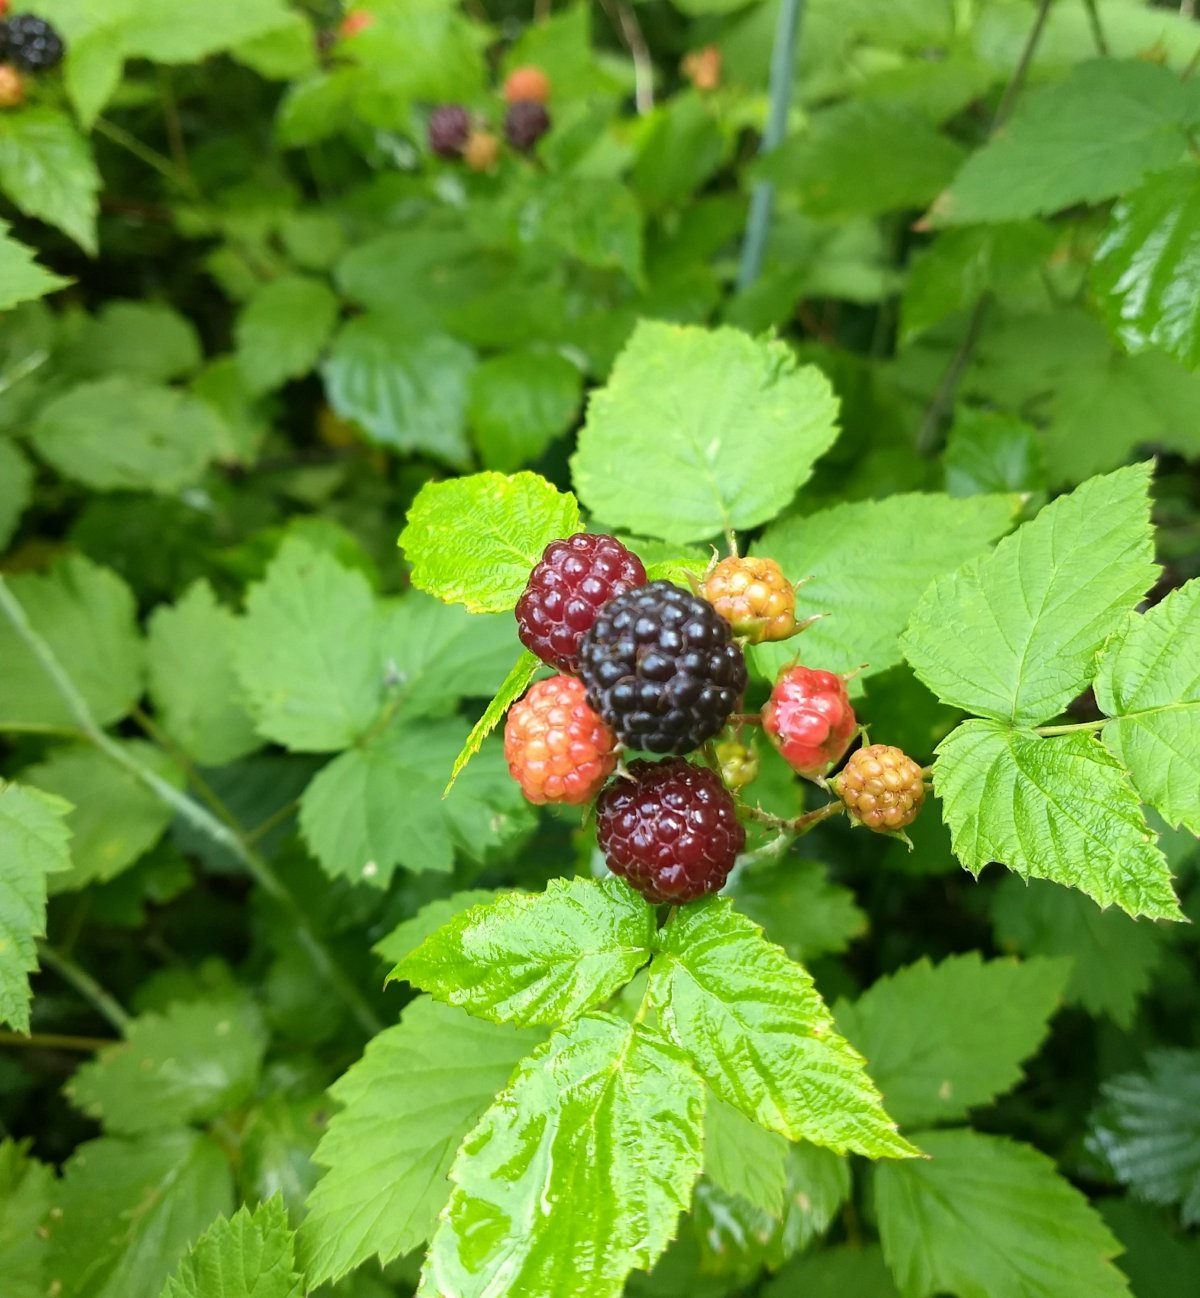 Life in a BerryPatch